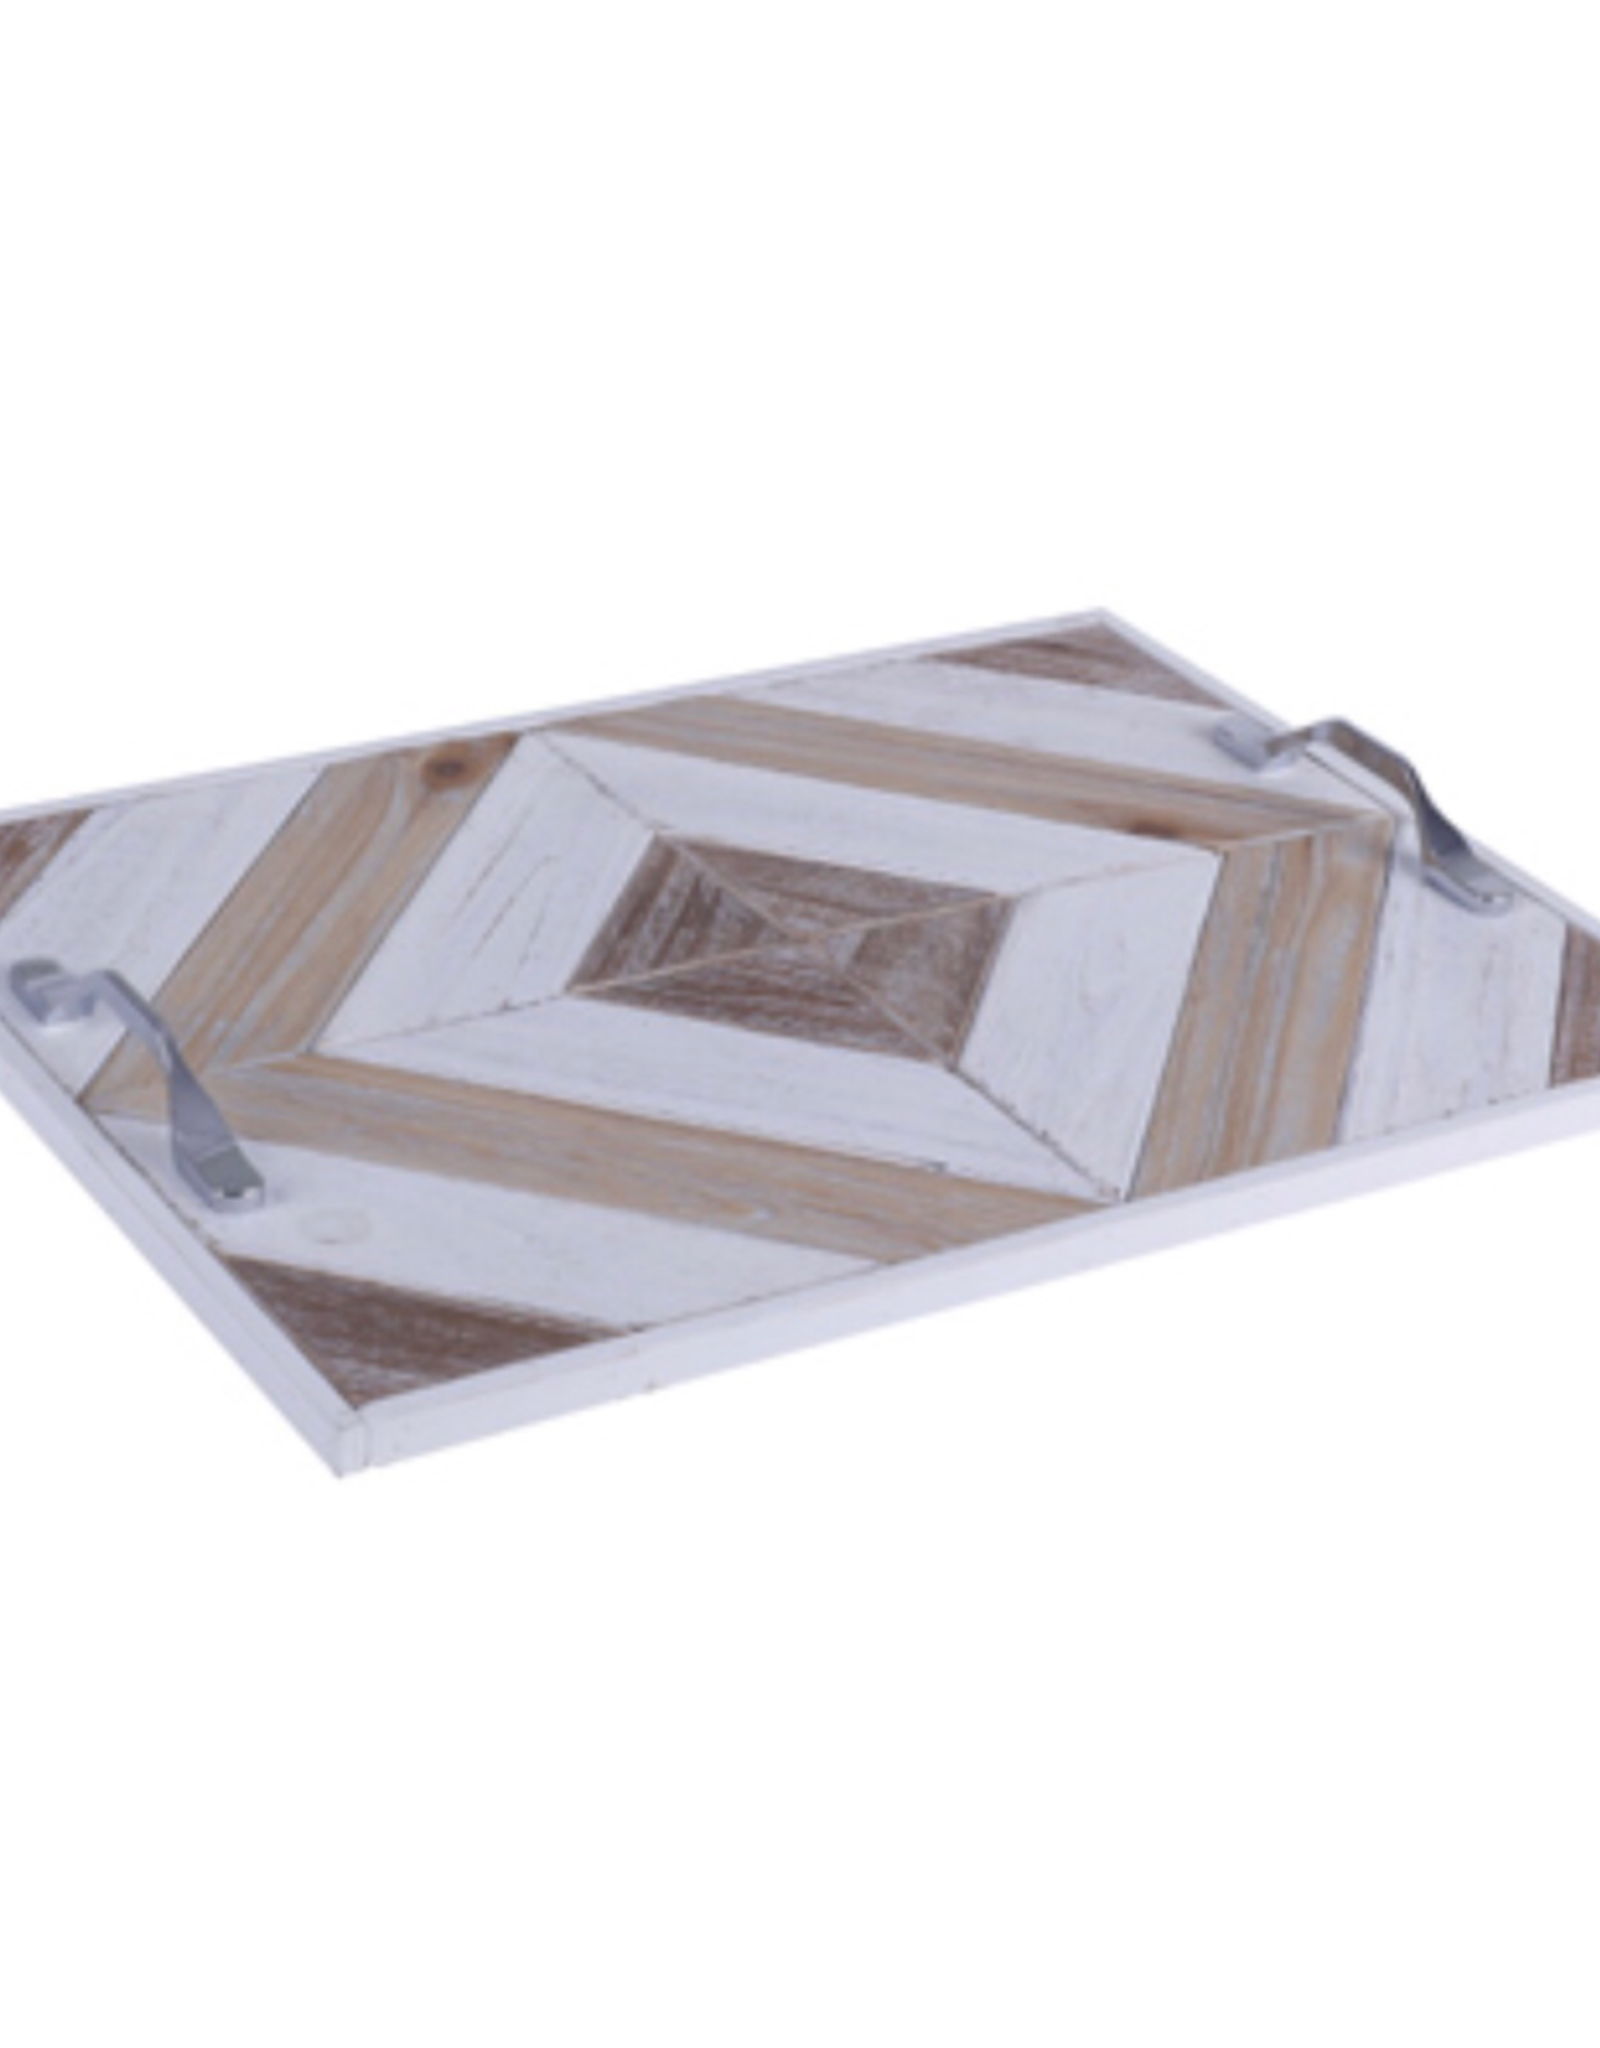 Tray Northwood Outlines Small IMP7127